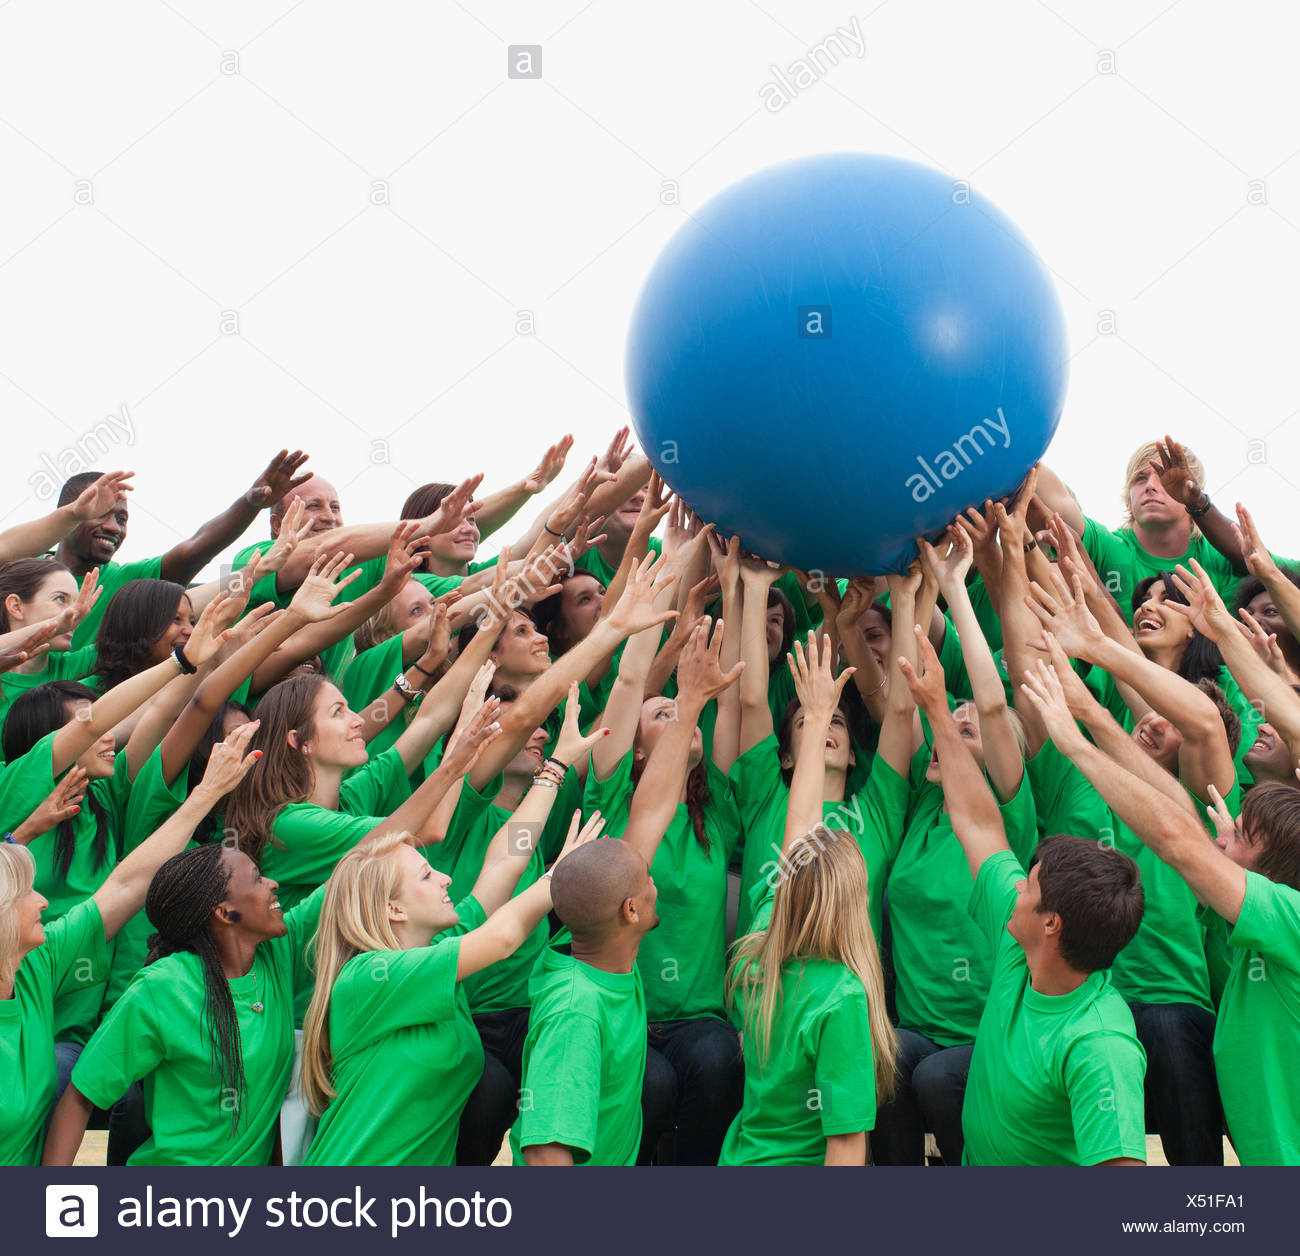 Group of spectators passing giant ball - Stock Image